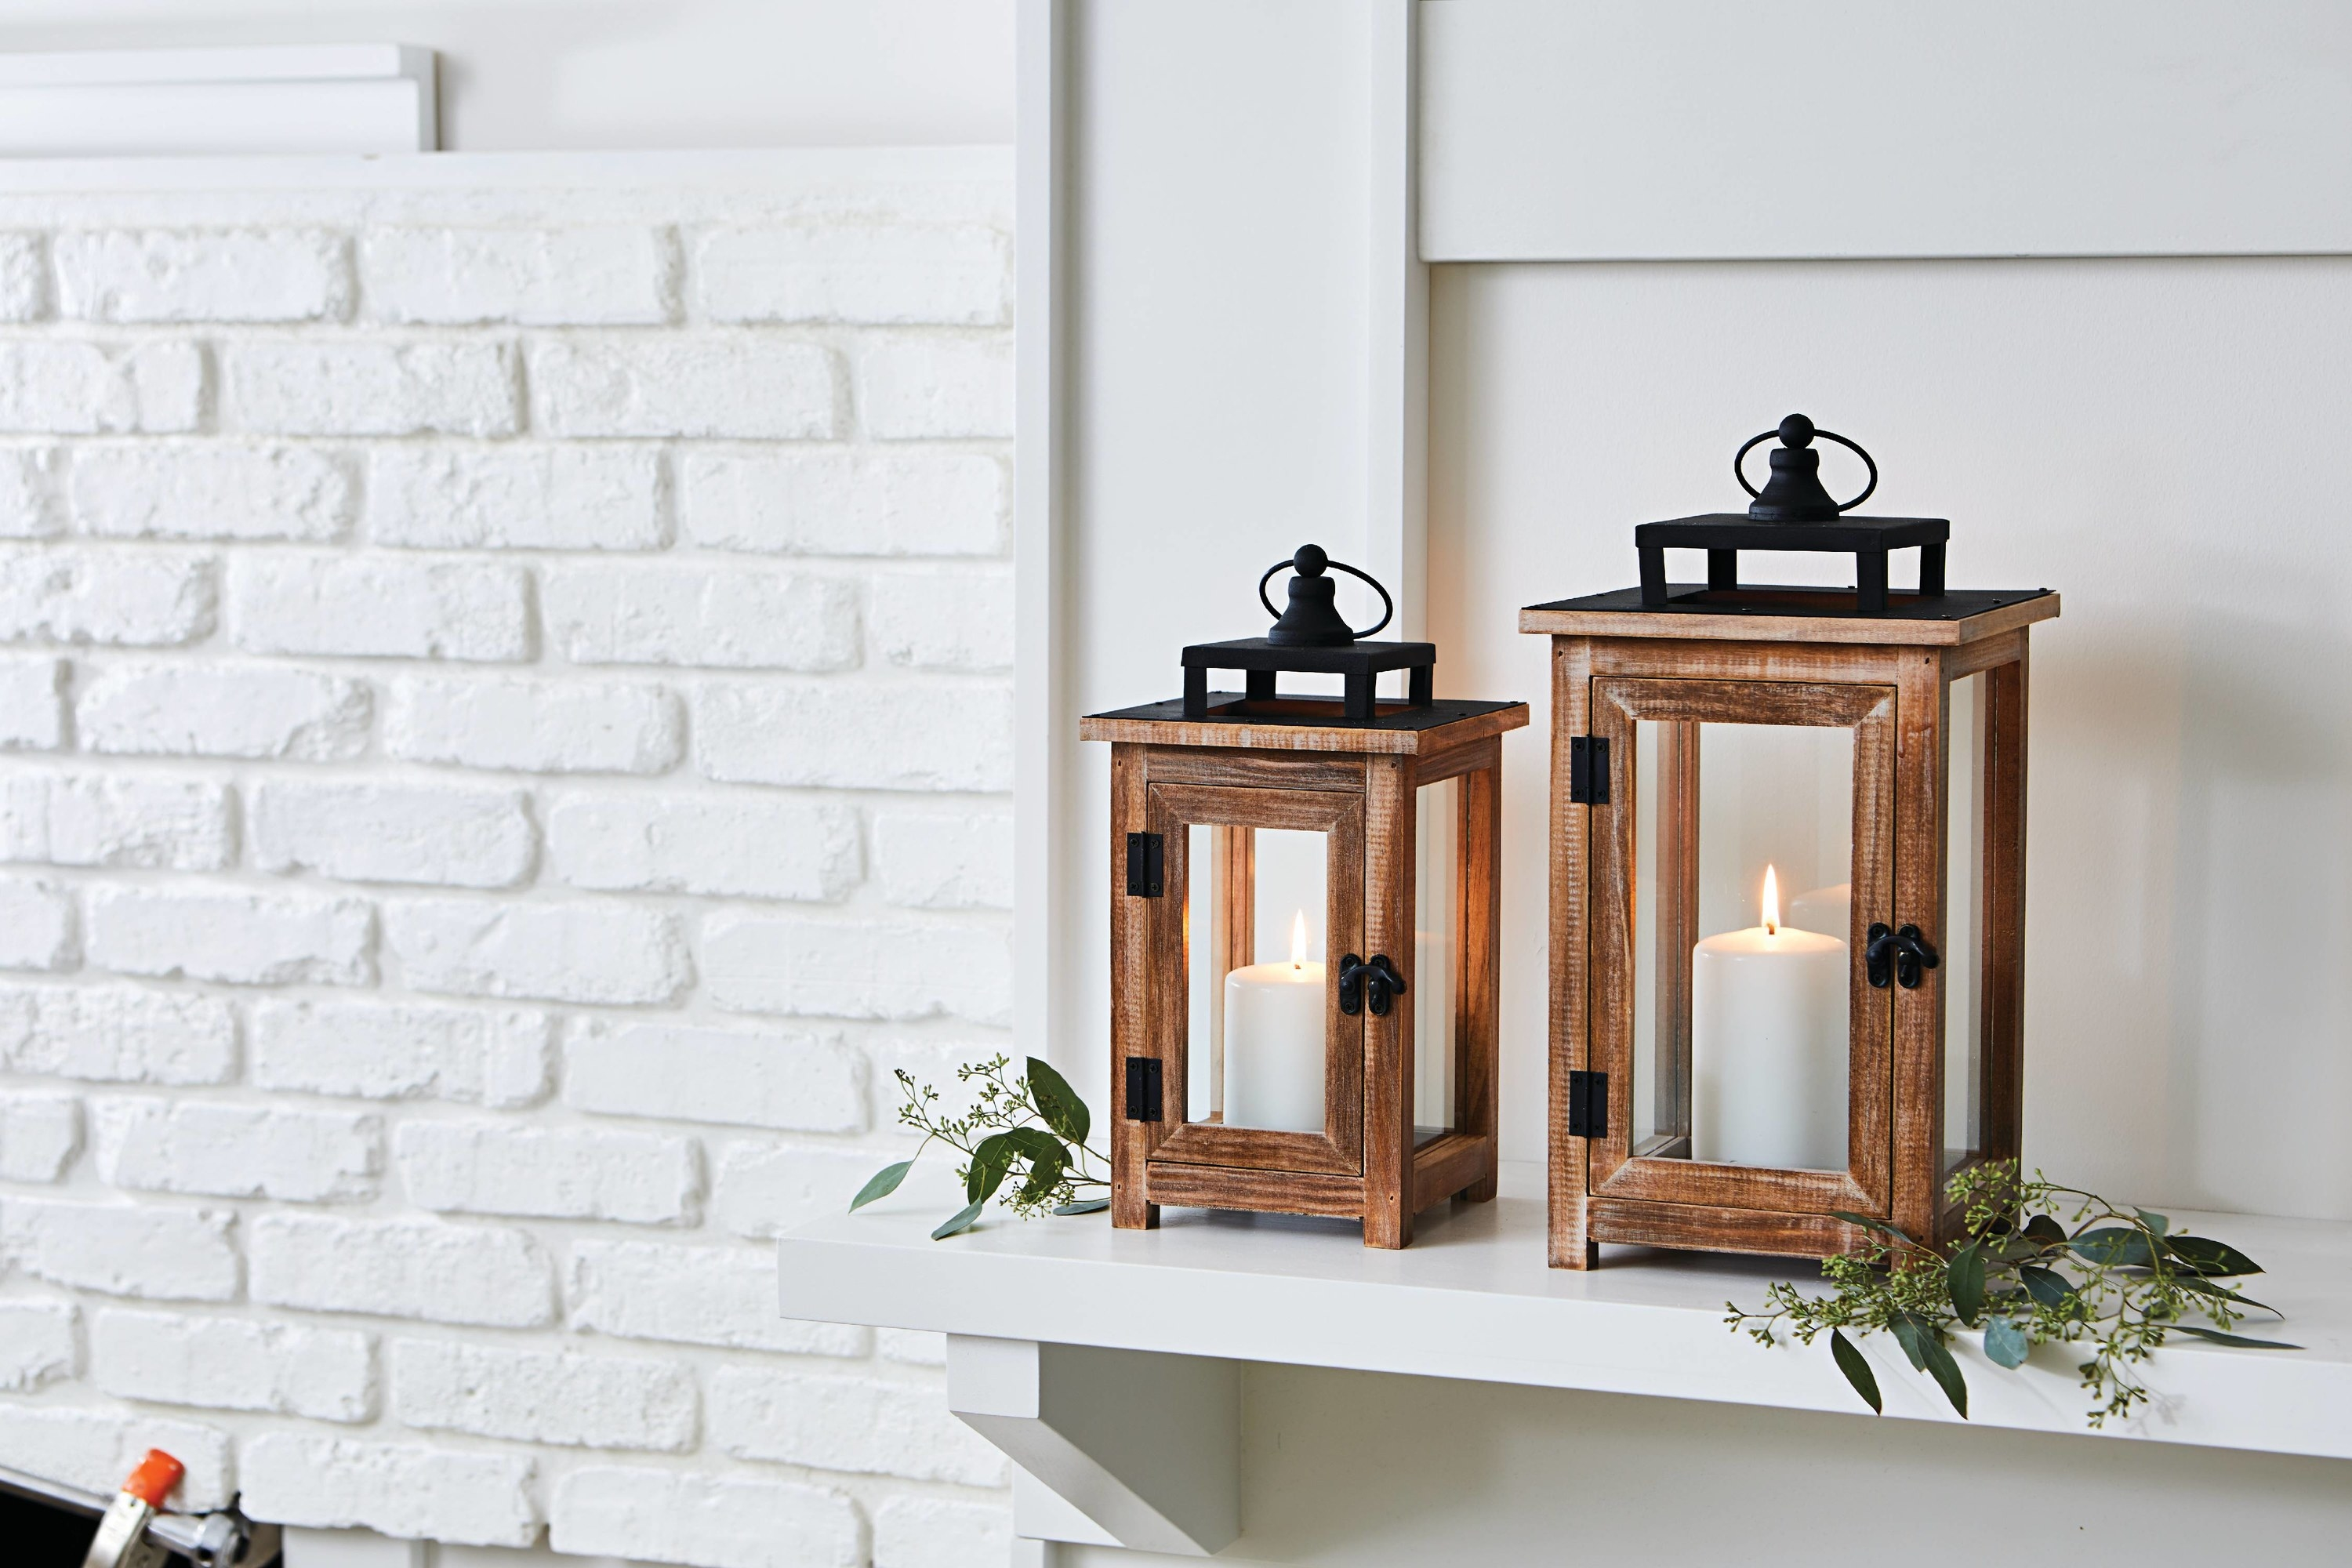 Two wood lanterns with glass windows in two sizes on a mantel